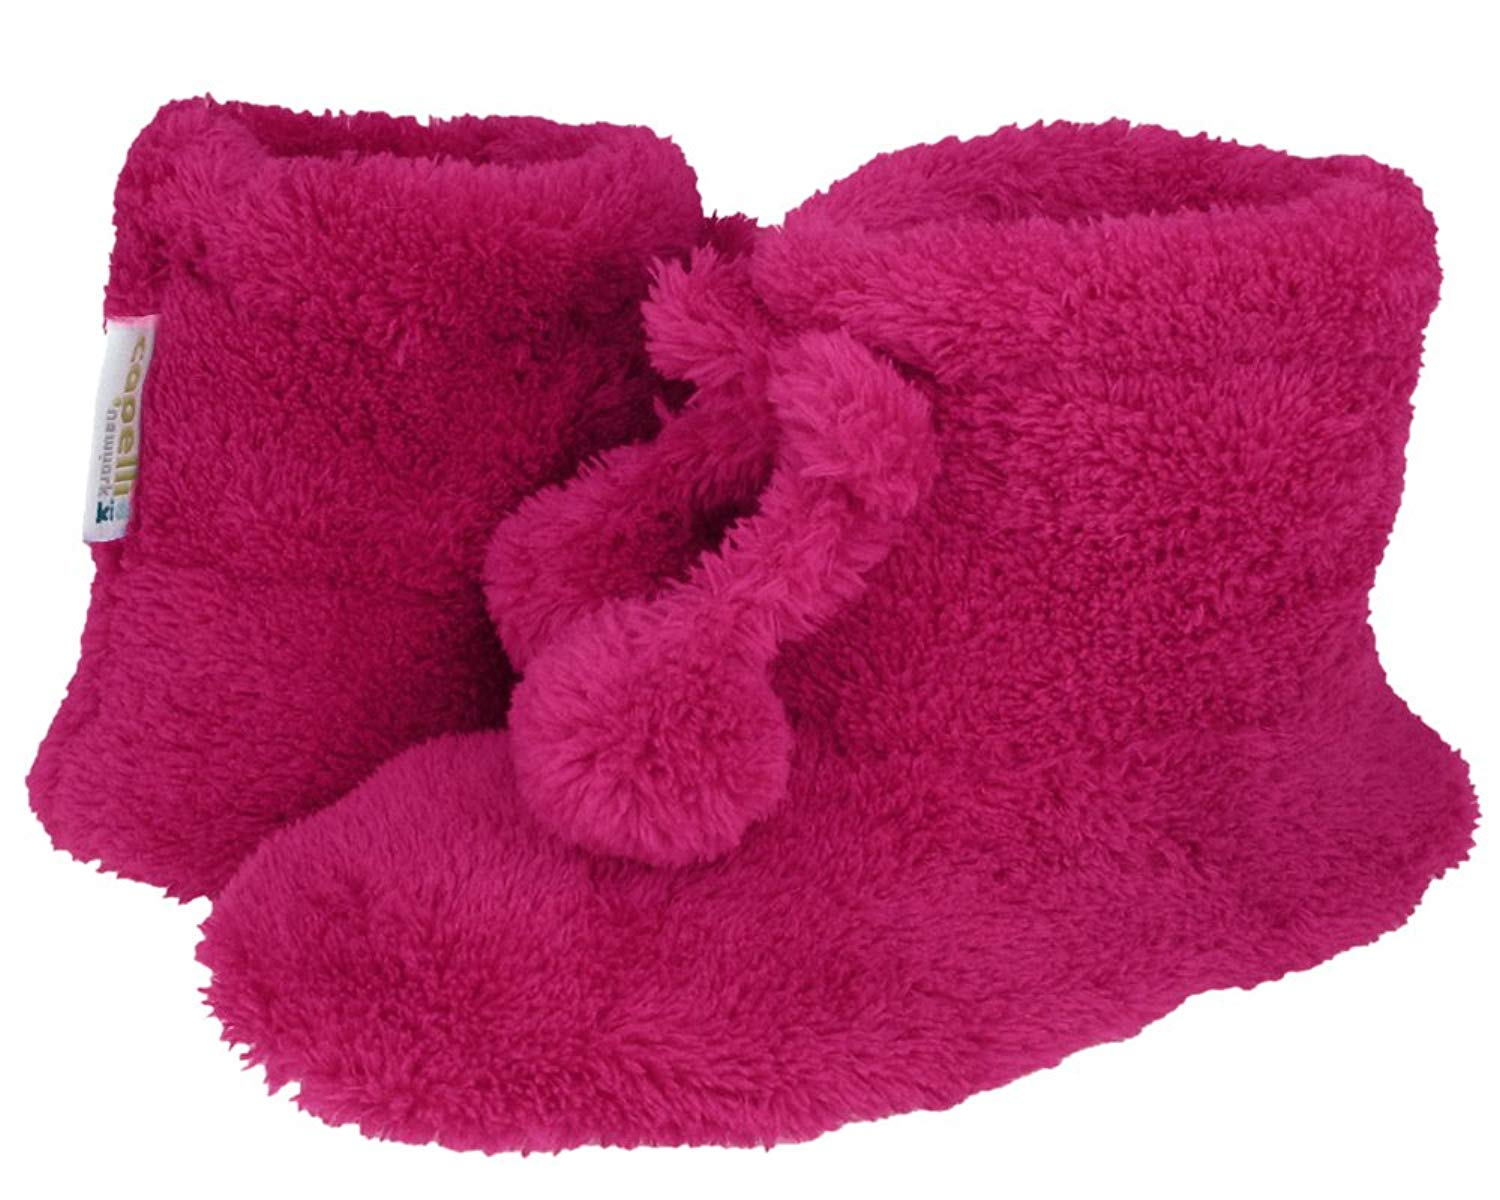 Capelli New York Dreamcozy Boot With Dreamcozy Tie & Poms Girls Indoor Slipper